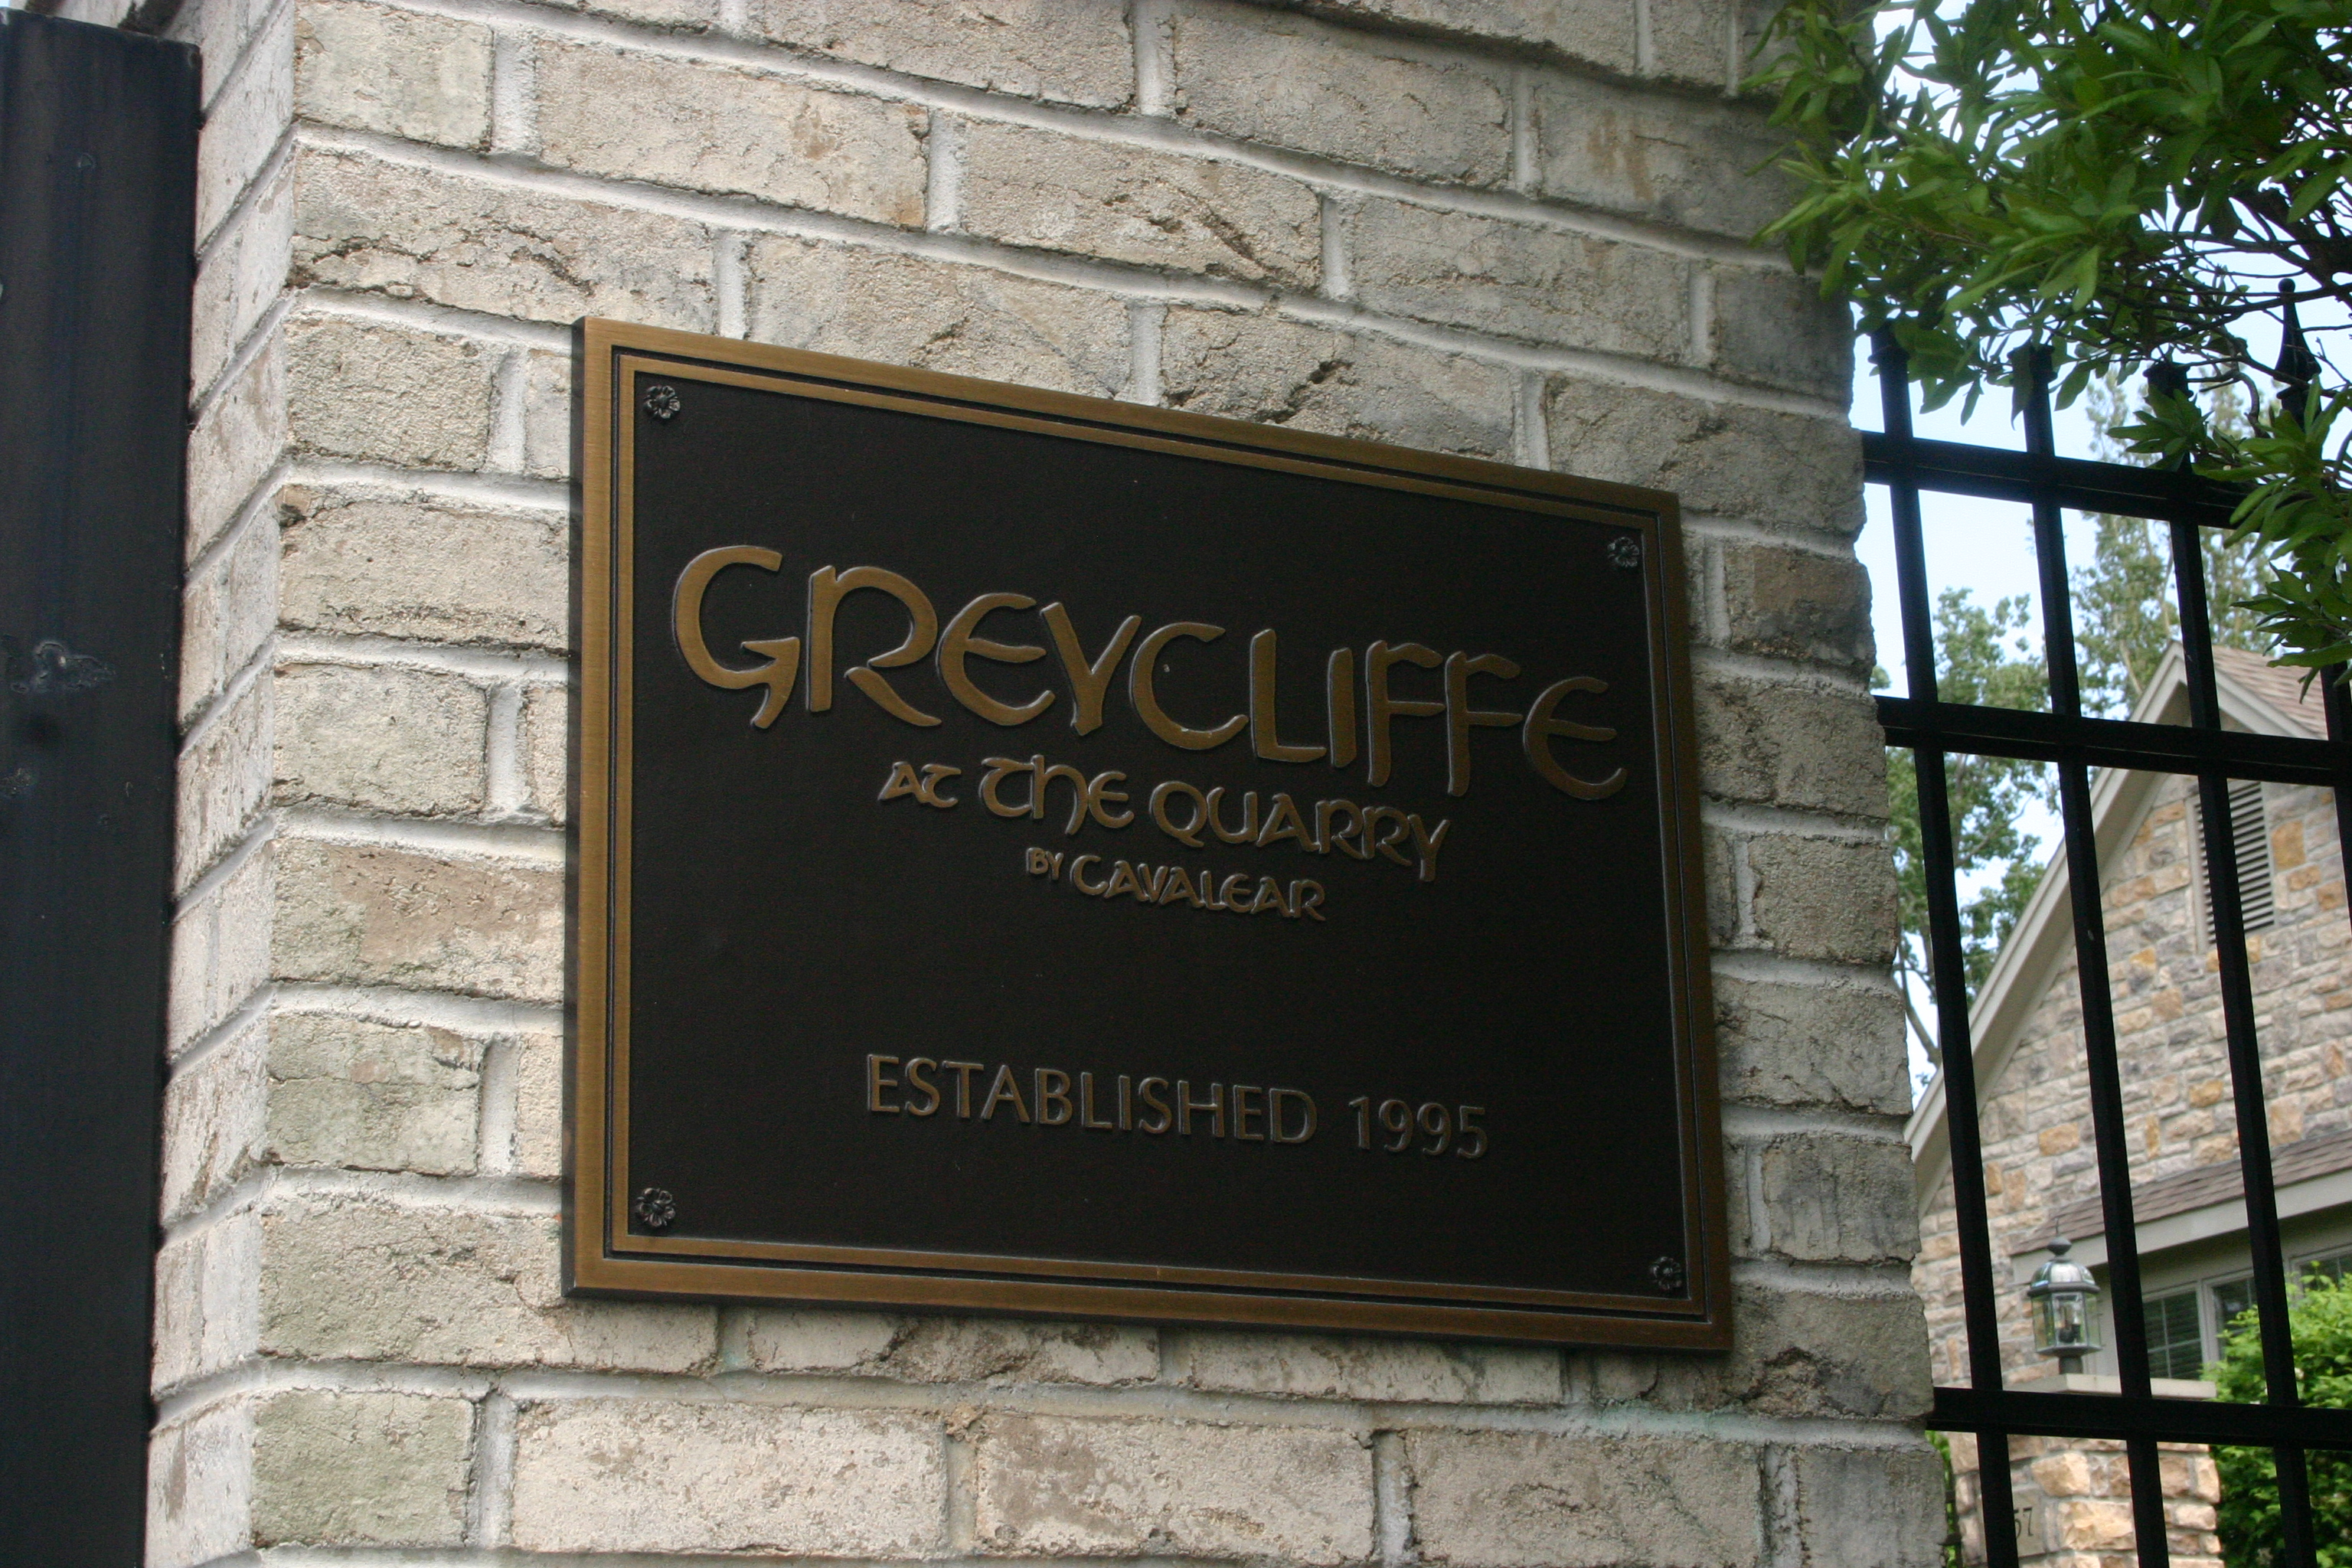 Greycliffe at the Quarry Homes for Sale & Greycliffe at the Quarry Real Estate